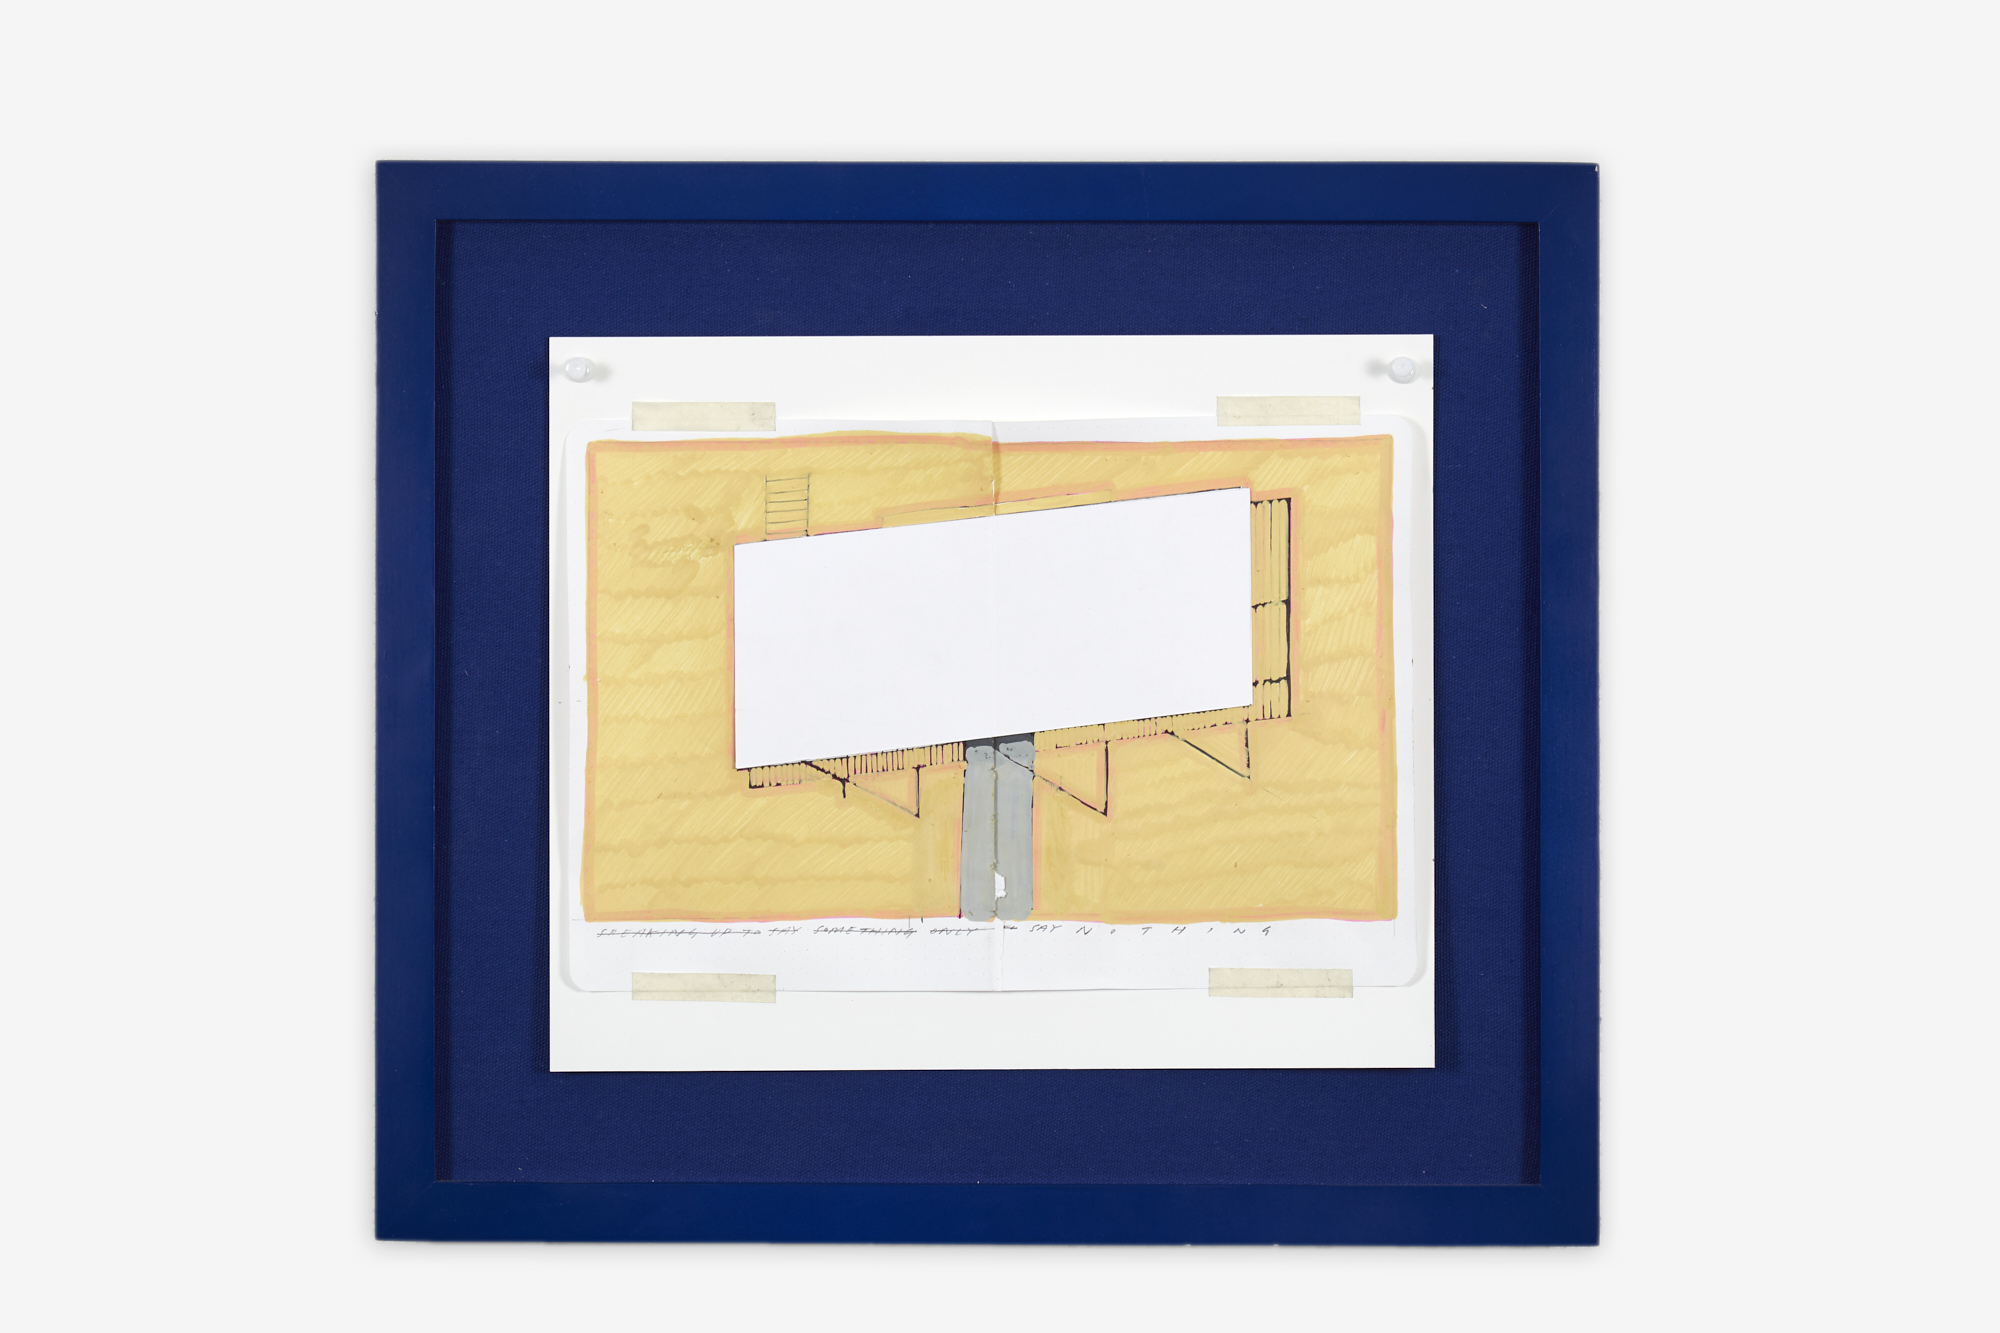 Charlie Godet Thomas, Study for Rooftop Poems, 2020. Acrylic, pen and pencil on paper, masking tape, pushpins, canvas, wooden frame. 37 x 41.5 x 3.5 cm.